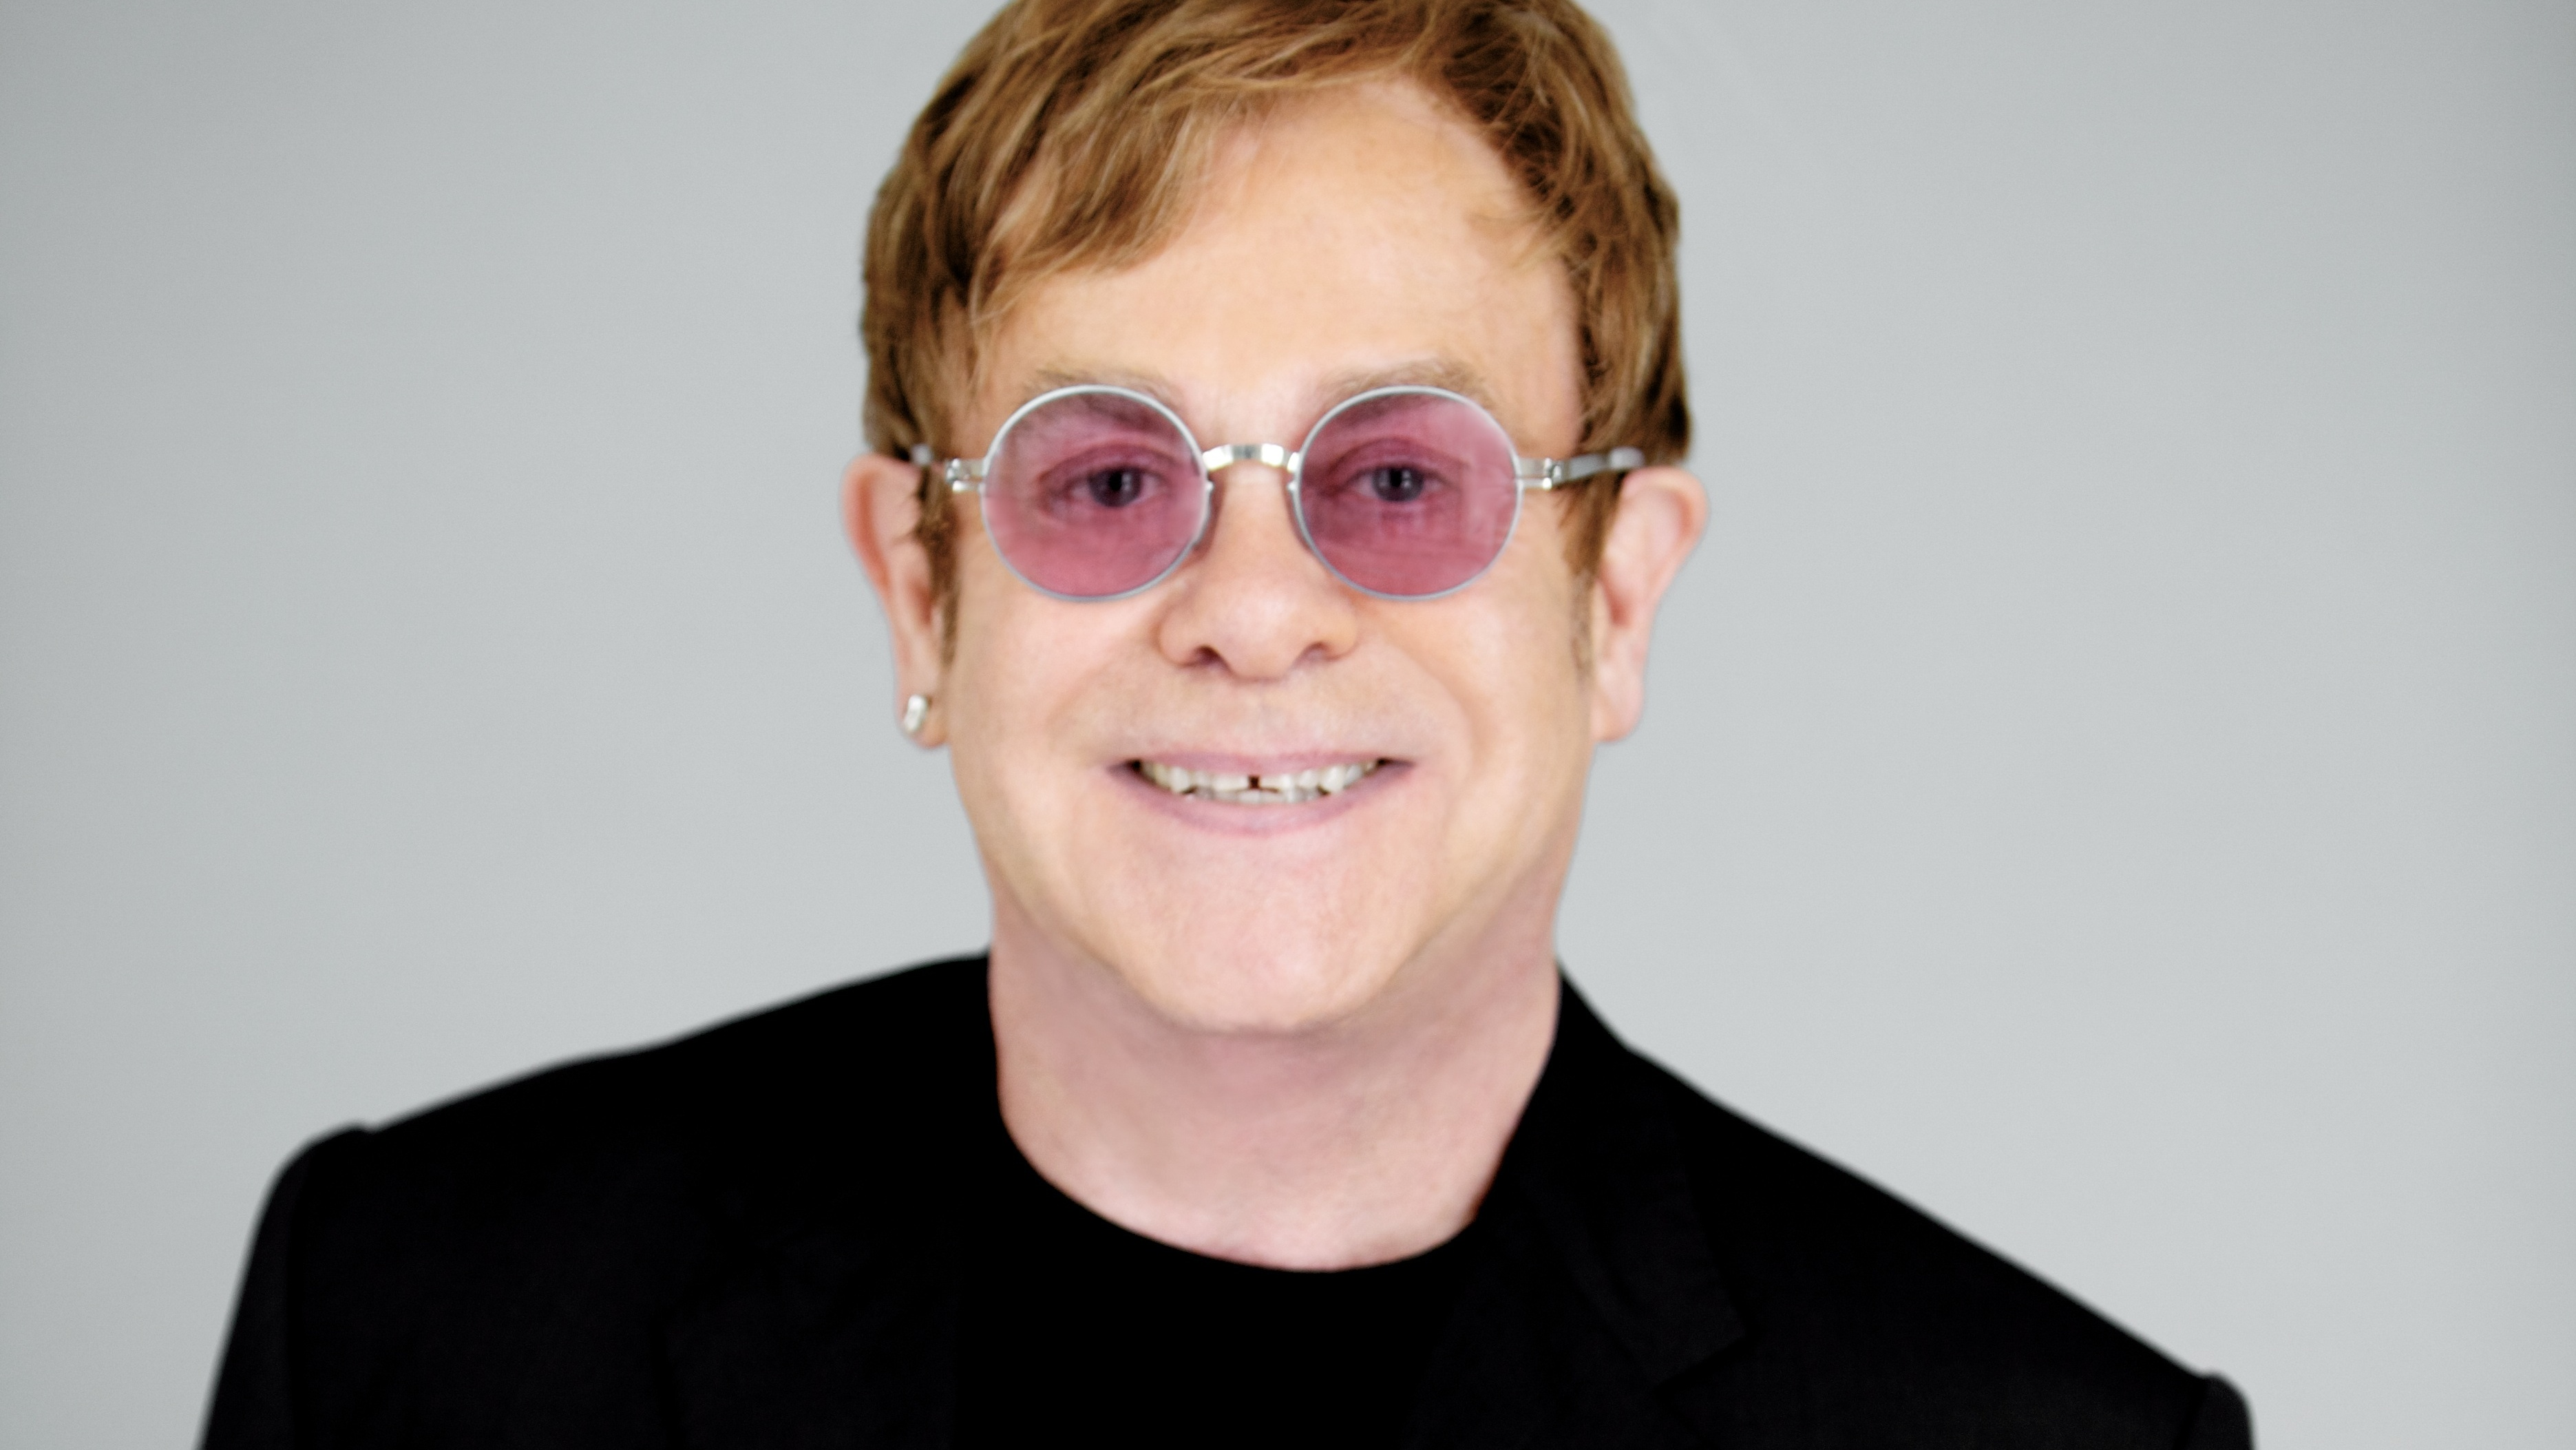 elton john sacrifice mp3